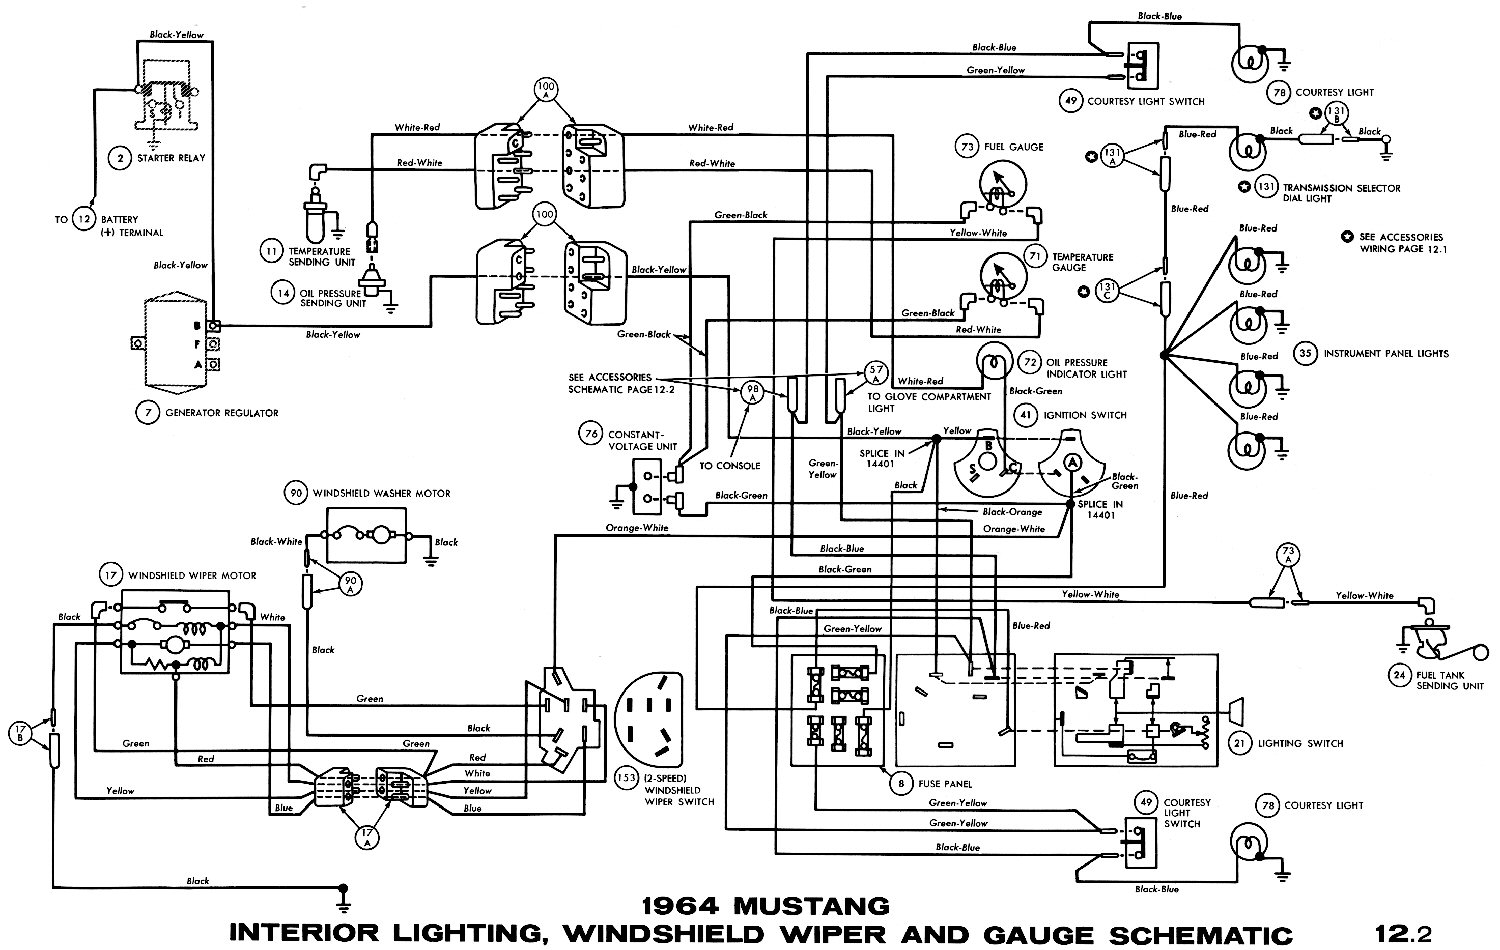 1964k 1967 mustang wiring diagram 1967 mustang radio wiring diagram 1965 mustang wiring diagram free at honlapkeszites.co